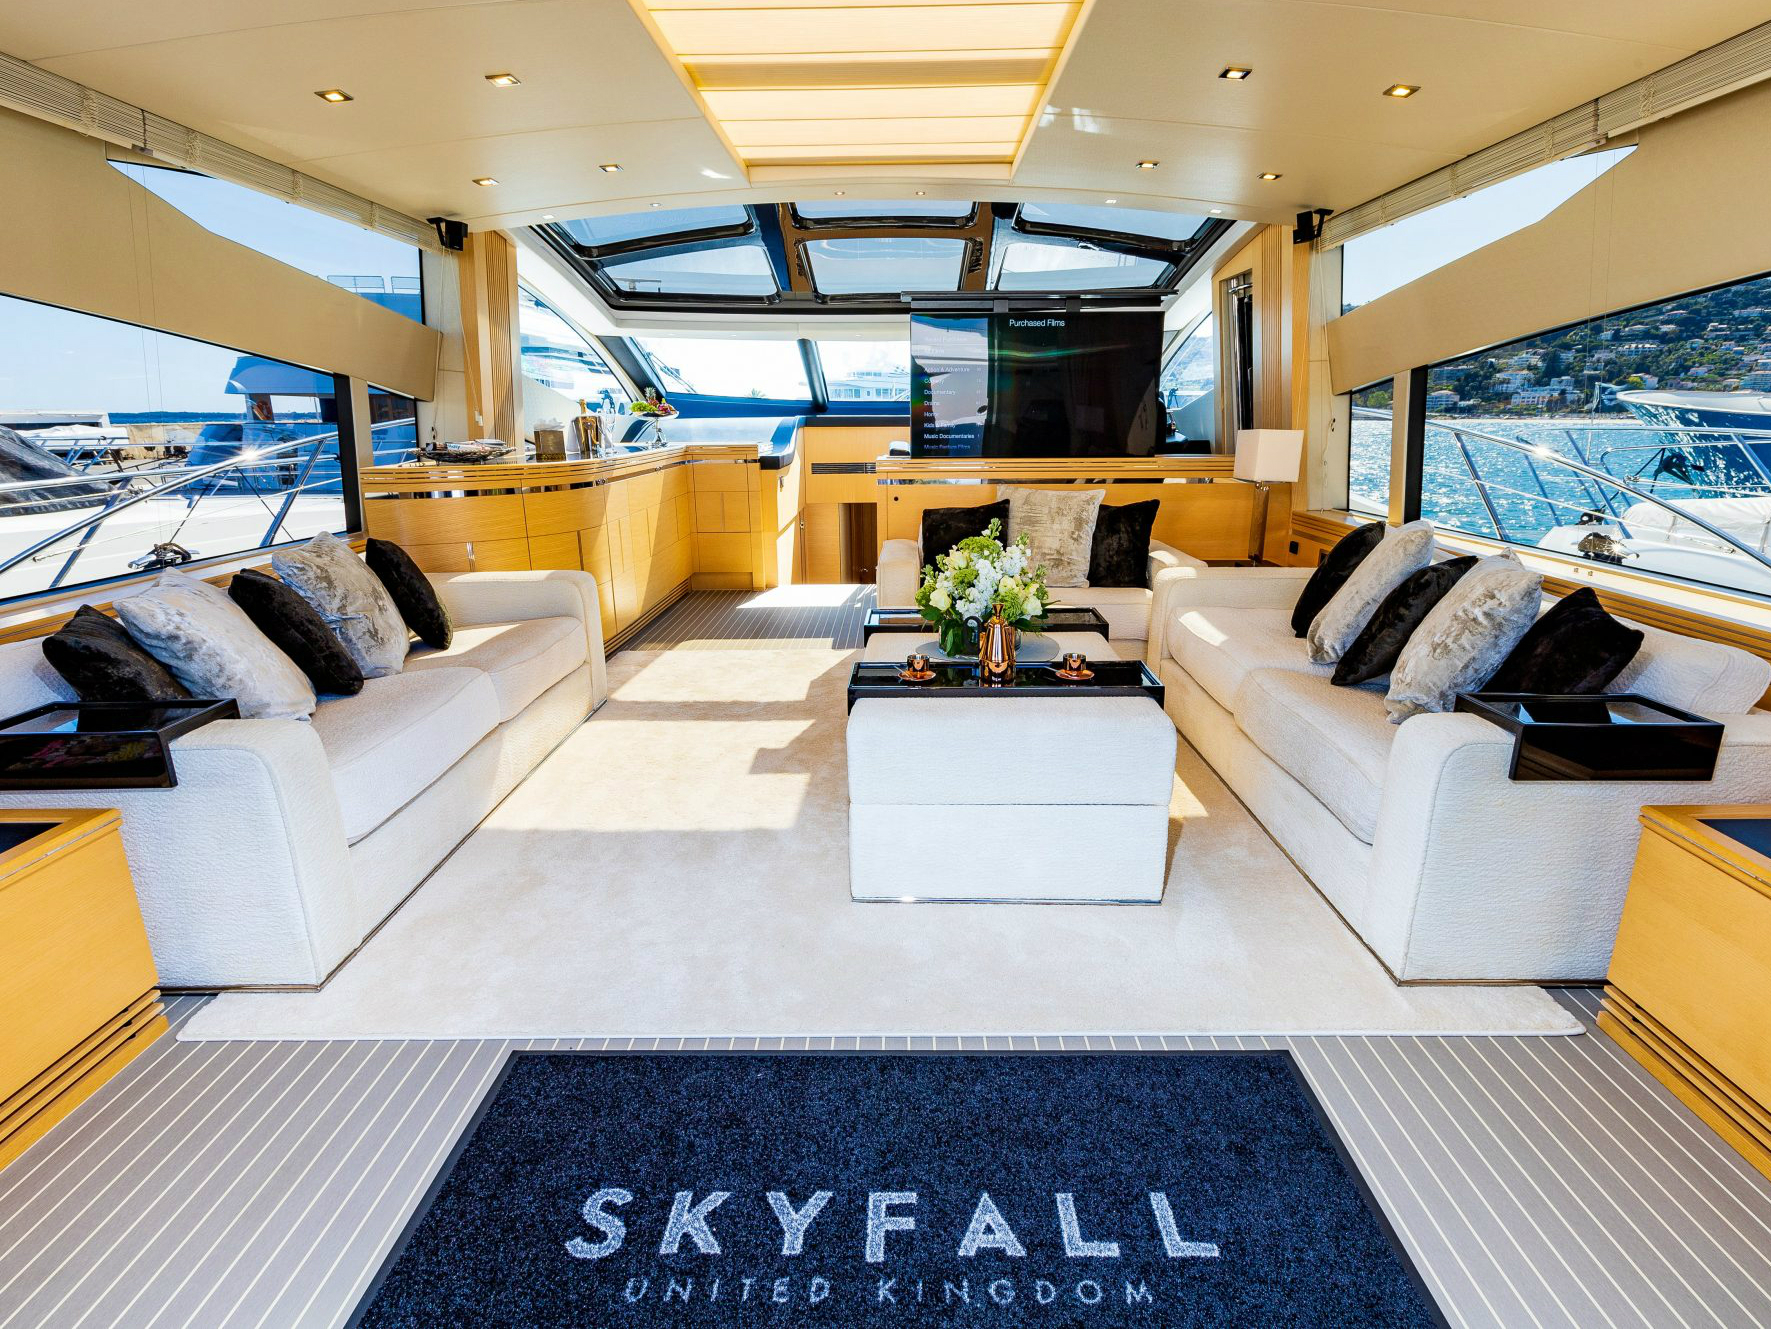 SKYFALL UNITED KINGDOM